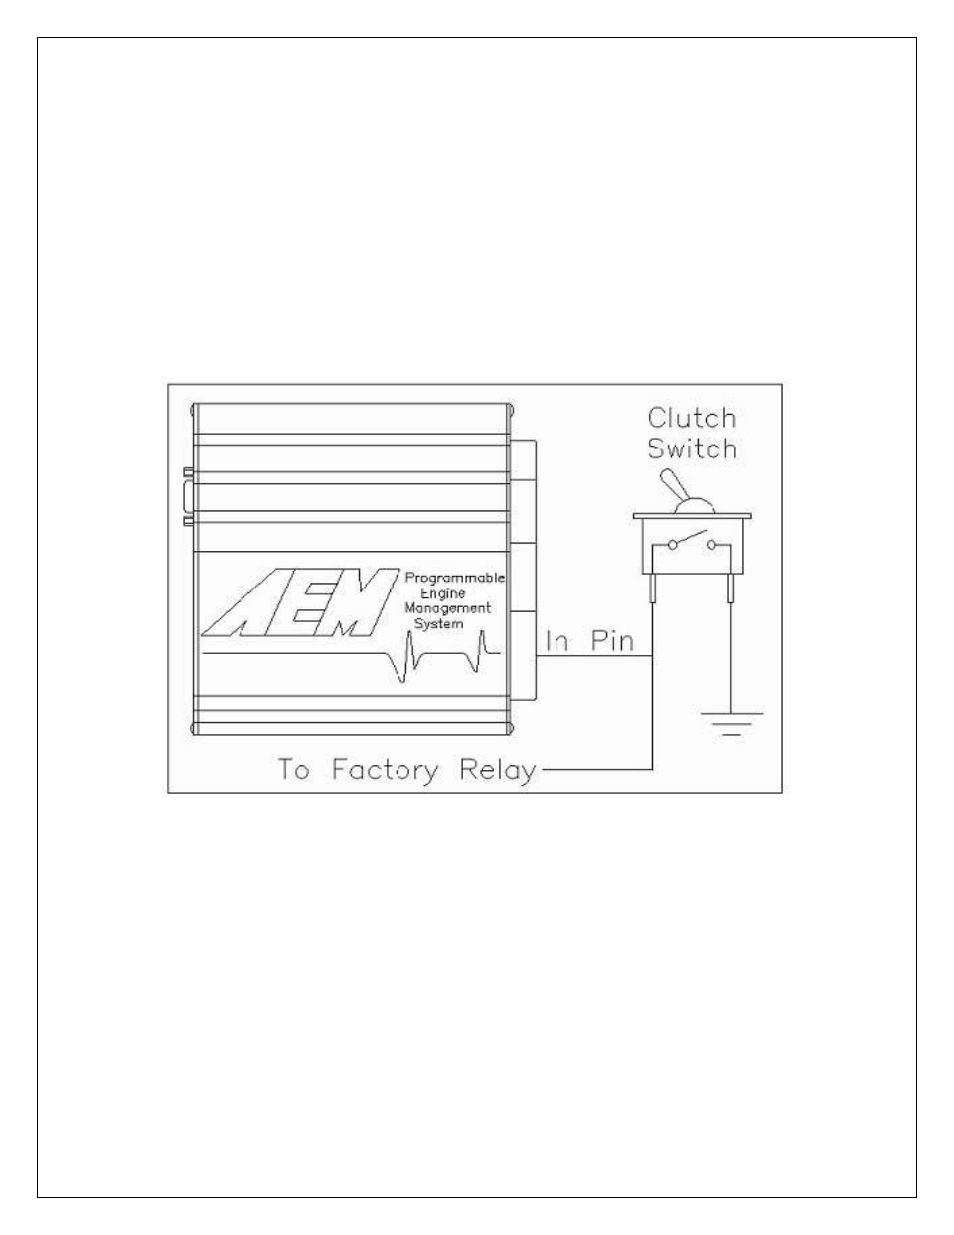 2step Rev Limiter Aem 30 6905 Universal Programmable Ems 4 User Wire The Switch In As Shown Below Manual Page 242 279